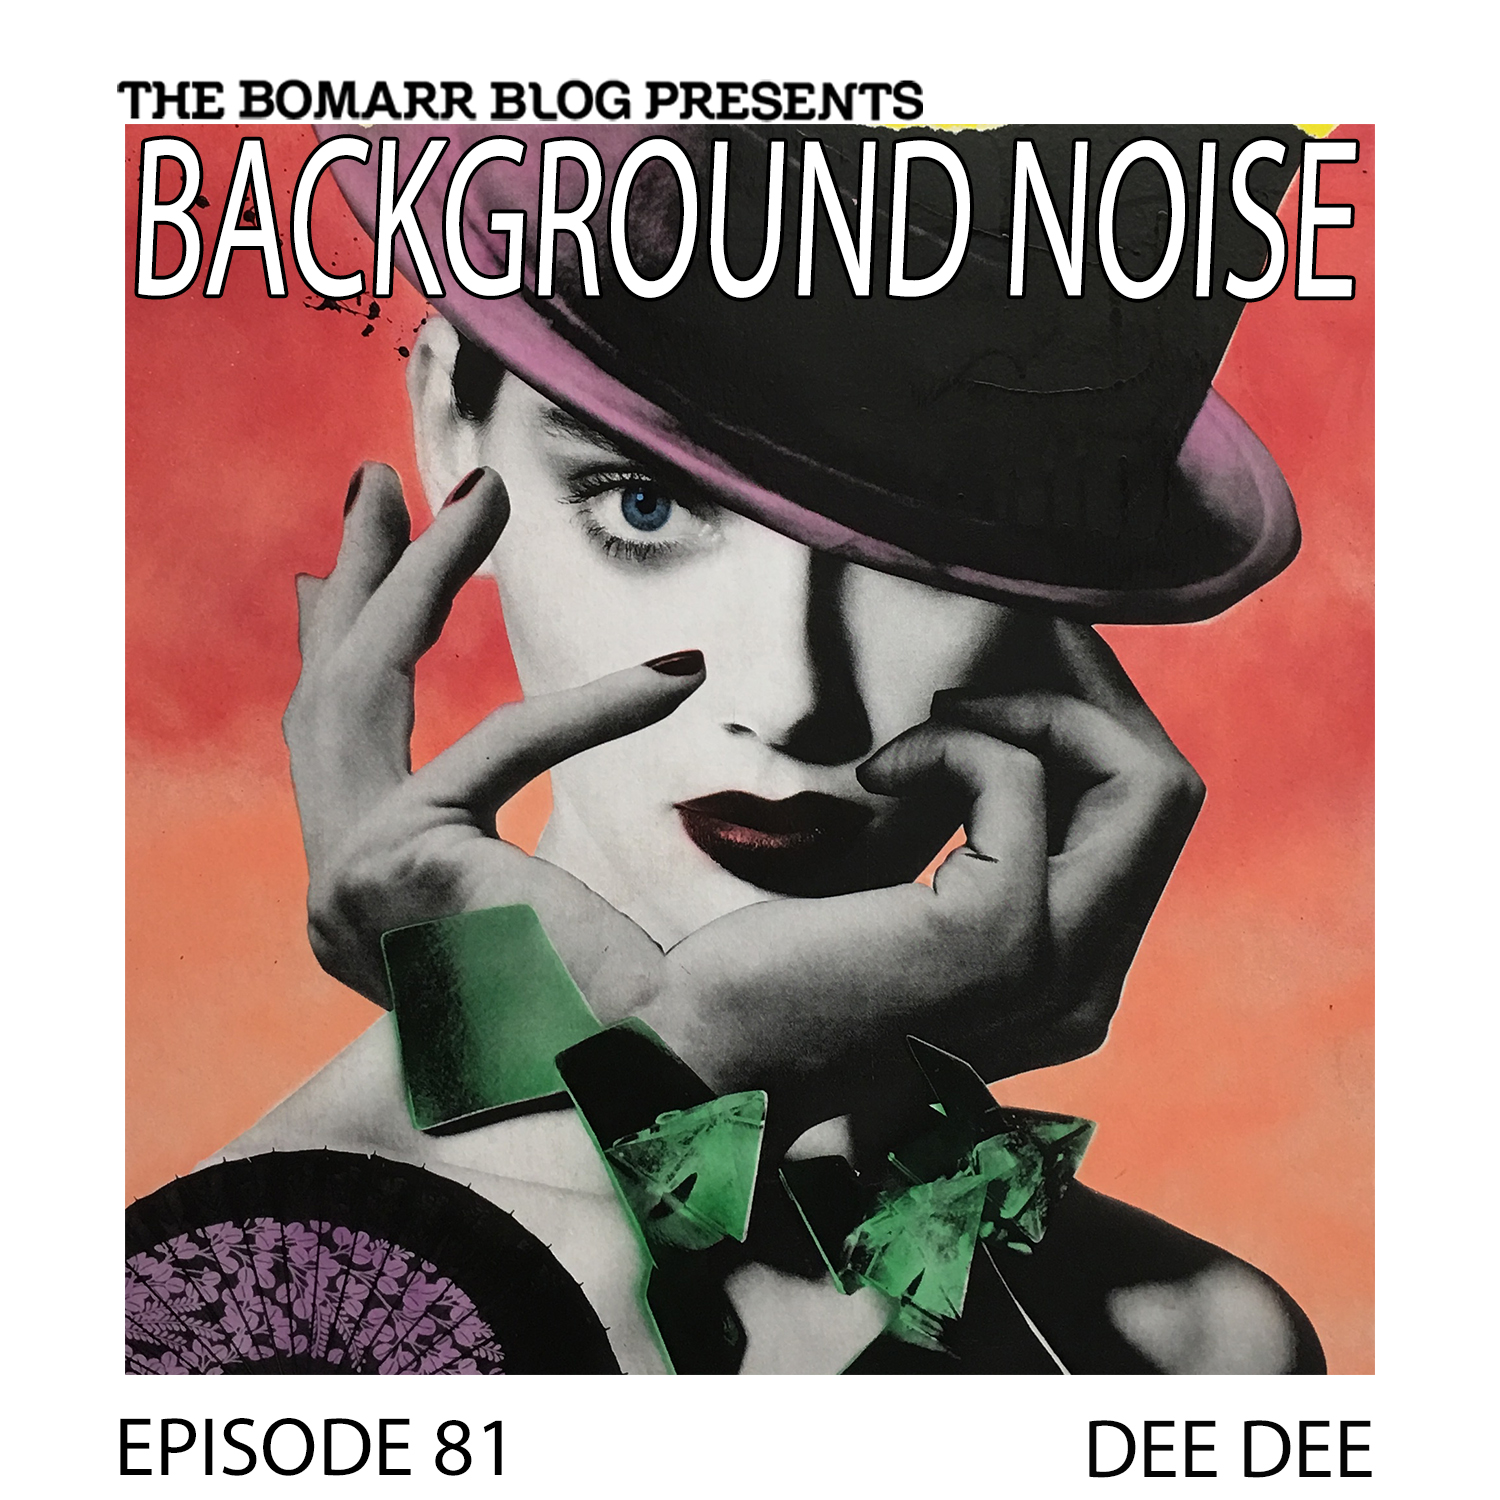 THE BACKGROUND NOISE PODCAST SERIES FOCUSES ON THE MUSIC THAT ARTISTS LISTEN TO WHEN THEY WORK, WHAT MUSIC INSPIRES THEM, OR JUST MUSIC THEY LIKE. THIS WEEK, IN EPISODE 81, THE FOCUS IS ON DEE DEE